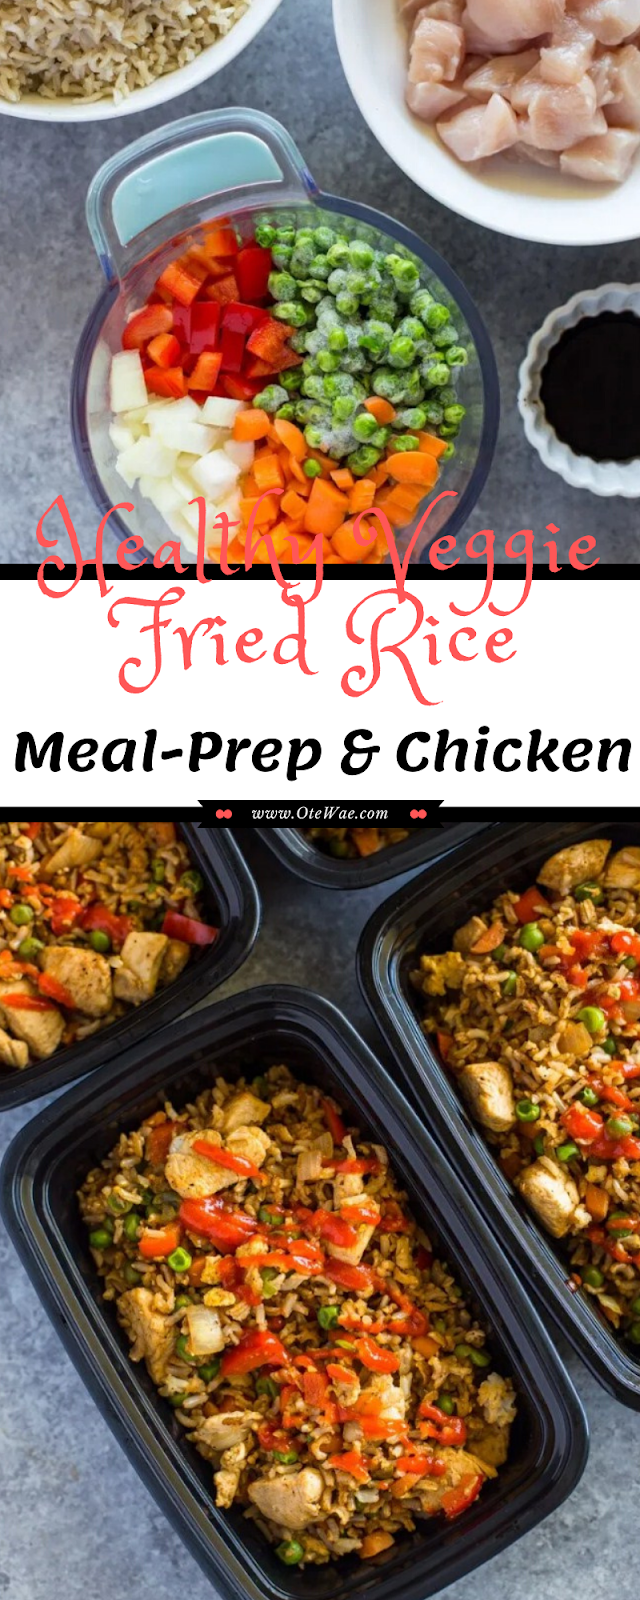 Healthy Veggie Fried Rice Meal-Prep & Chicken